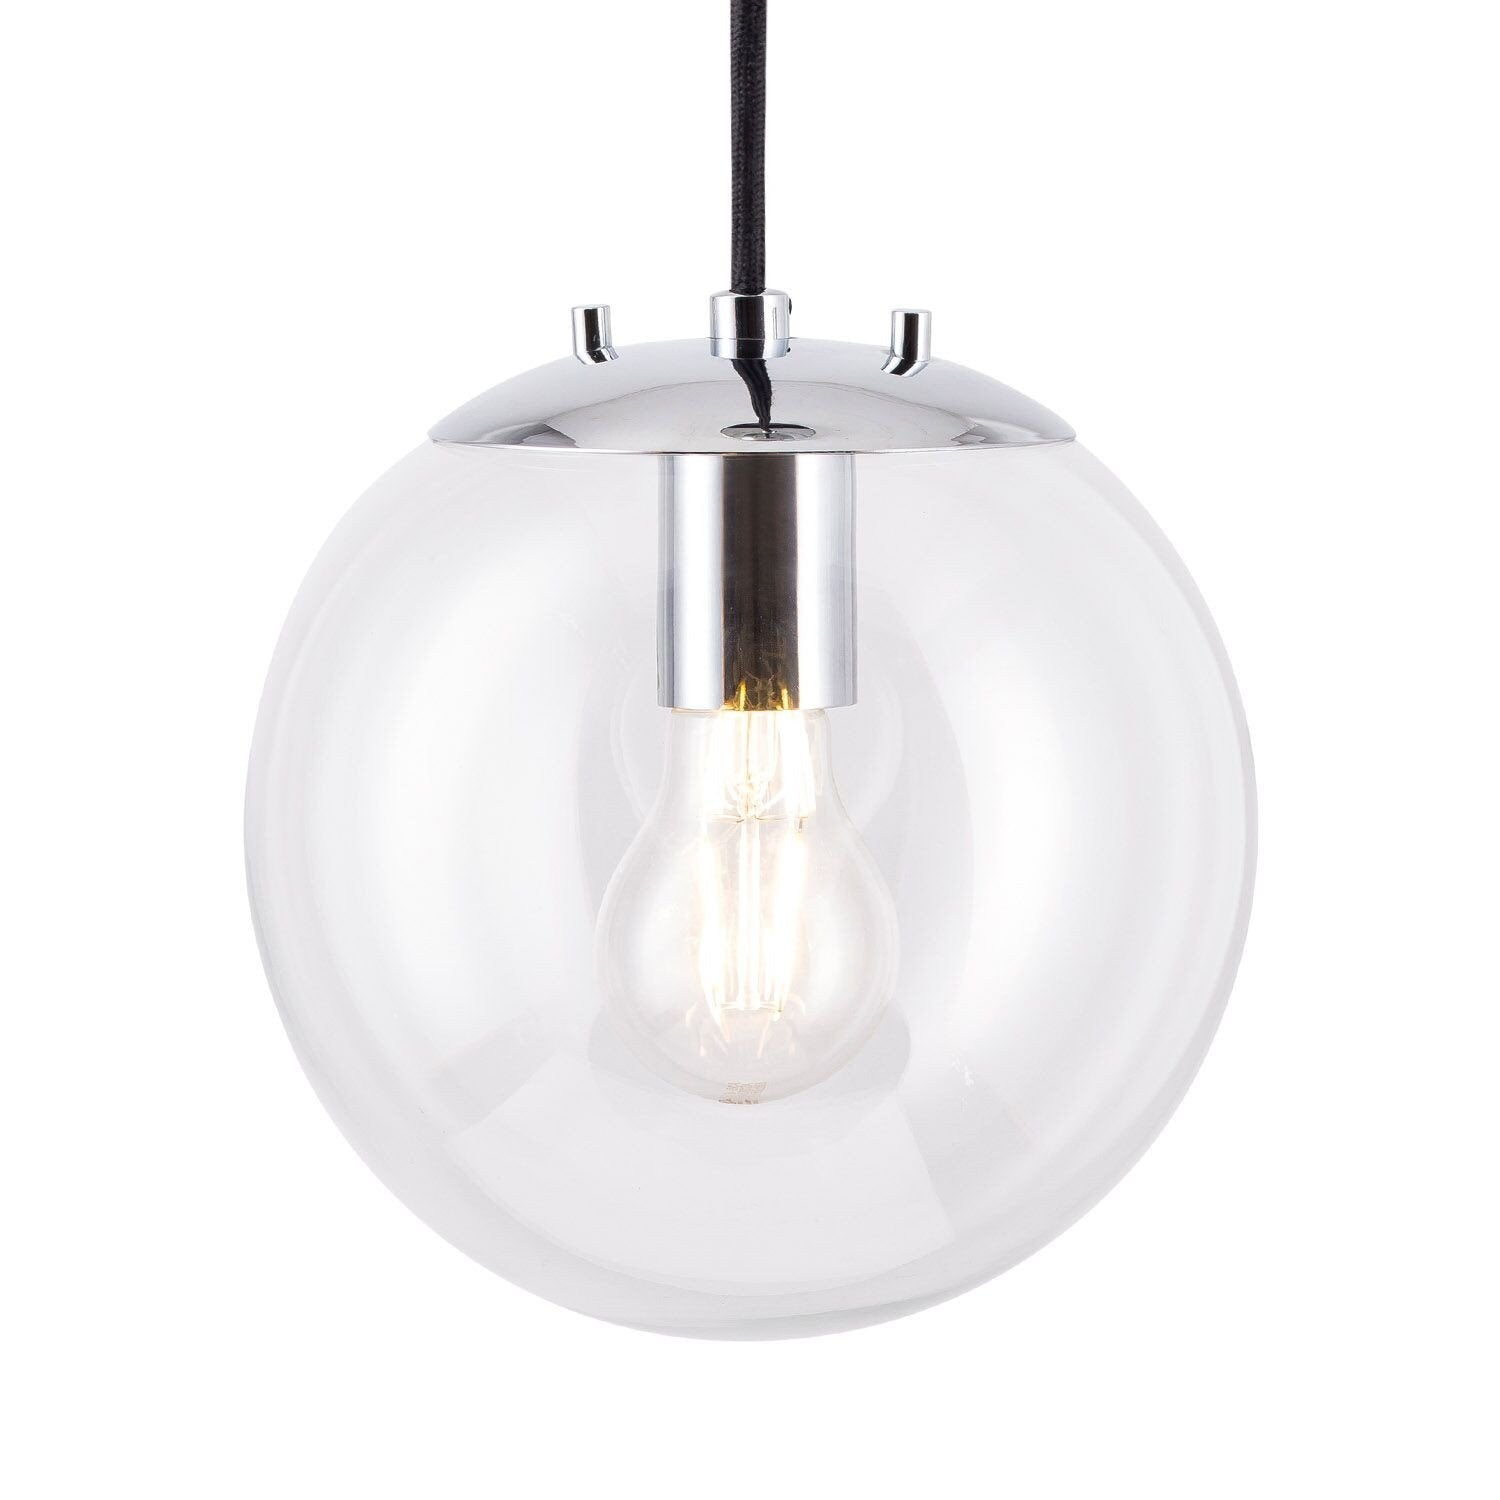 Sferra LED Industrial Kitchen Pendant Light - REPLACEMENT CLEAR GLASS